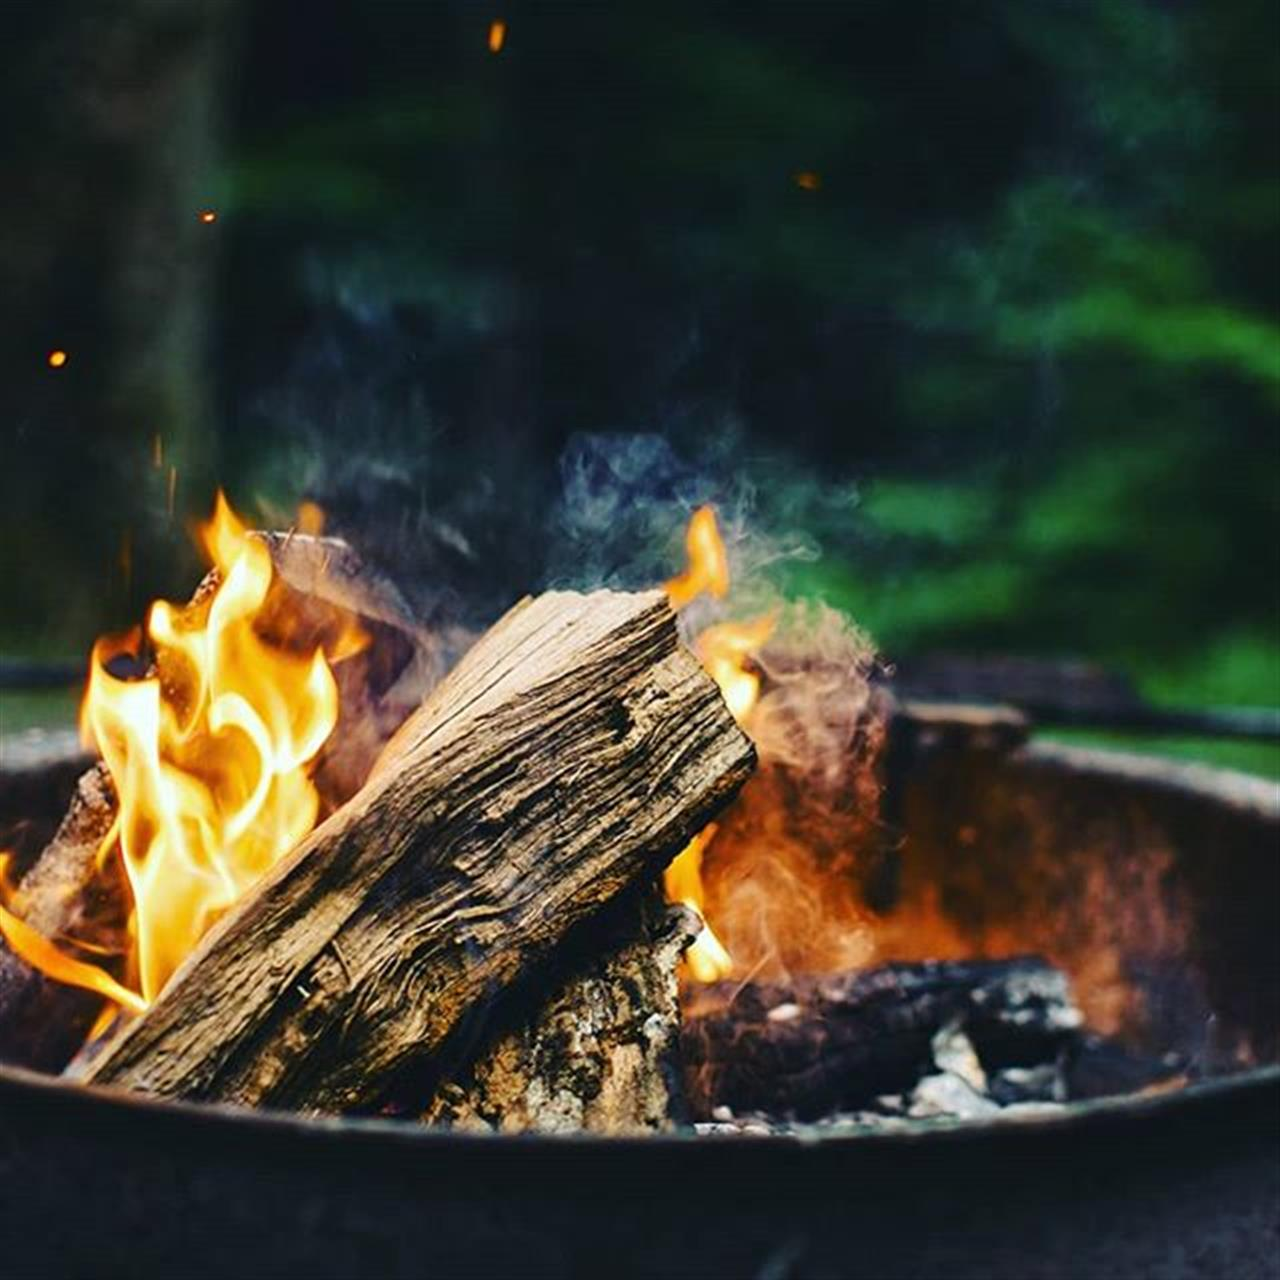 Here's looking forward to summertime campfires, good food and great friends!  #CarlsonRealtors #LeadingRELocal #BlowingRock #Boone #HighCountryHomeSpecialist #RealEstate #NCHighCountry #NCMountains #Camping #campfire #smores #summerfun